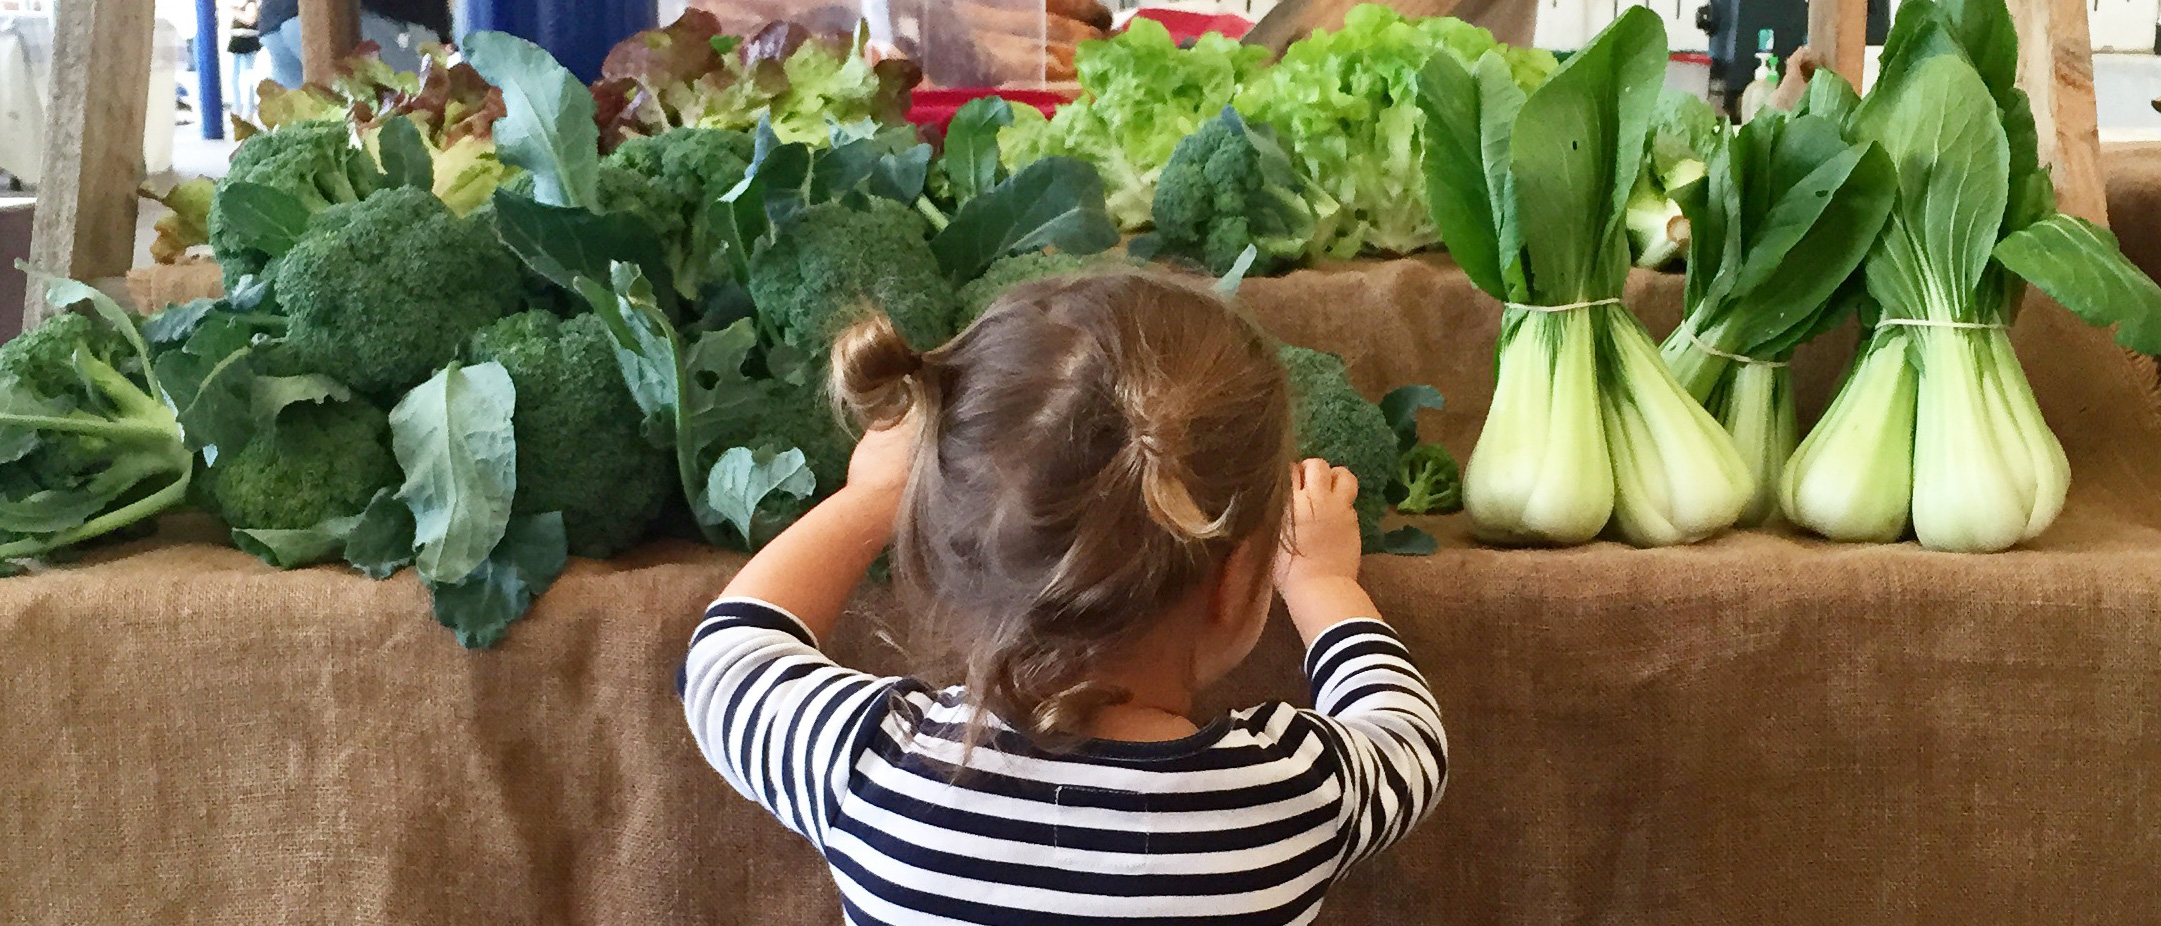 An Open Letter To Broccoli